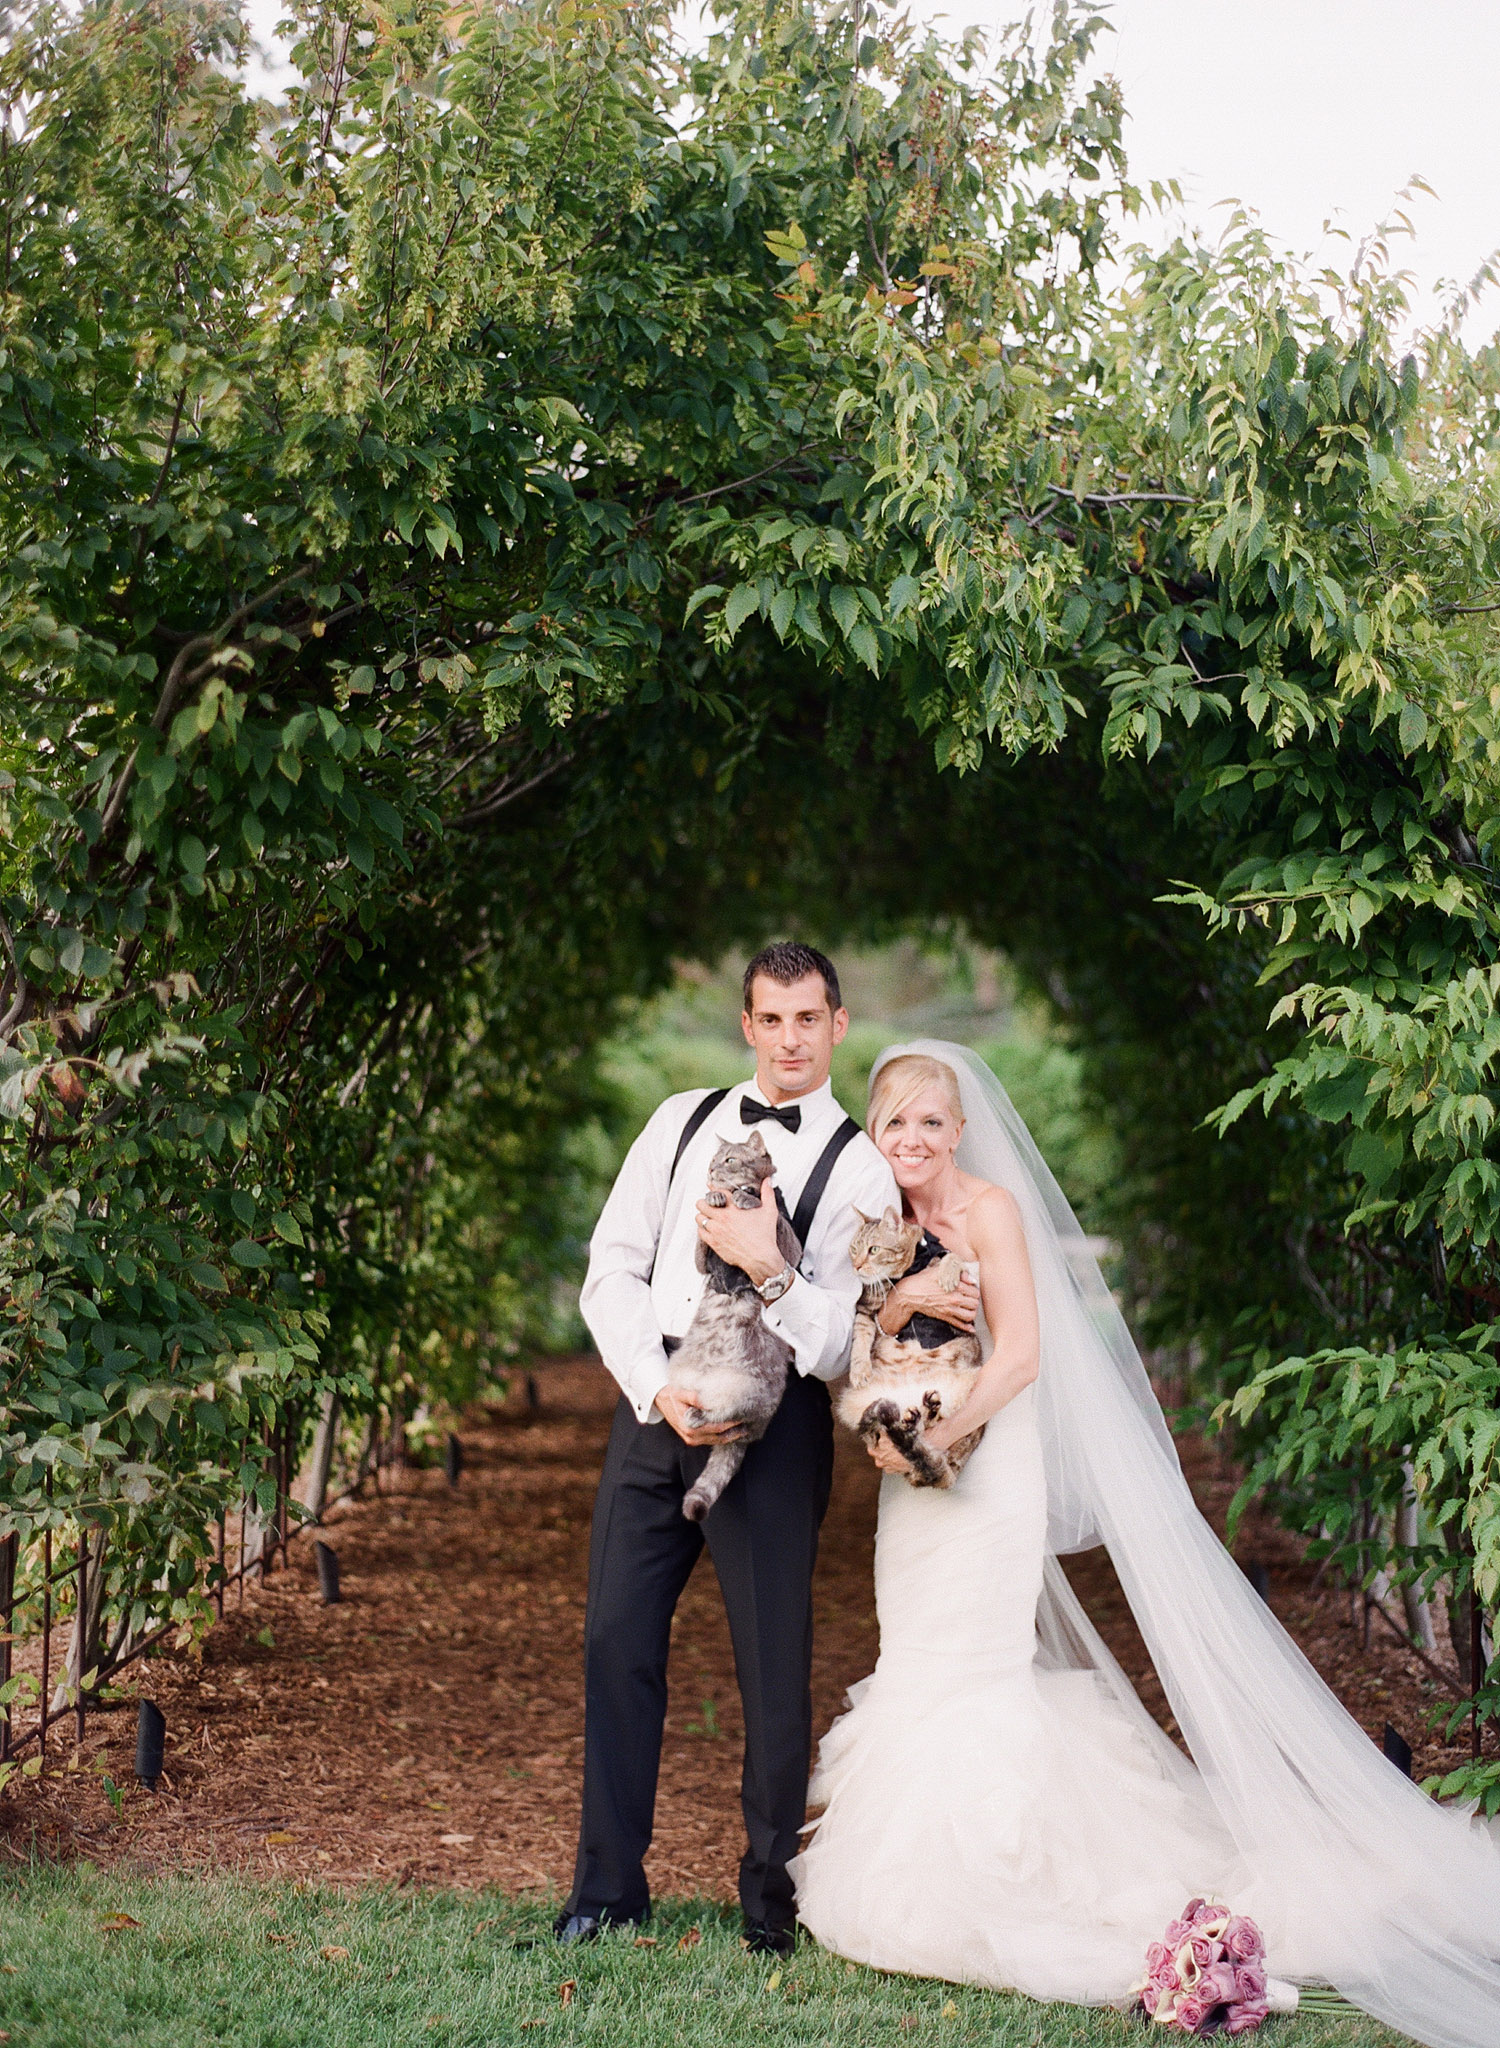 the bride and groom hold their cats dressed in tuxedos for their wedding. great idea for cats in a wedding. Destination wedding photographer Lexia Frank photographs this Italian wedding at the Villa Terrace wedding on film